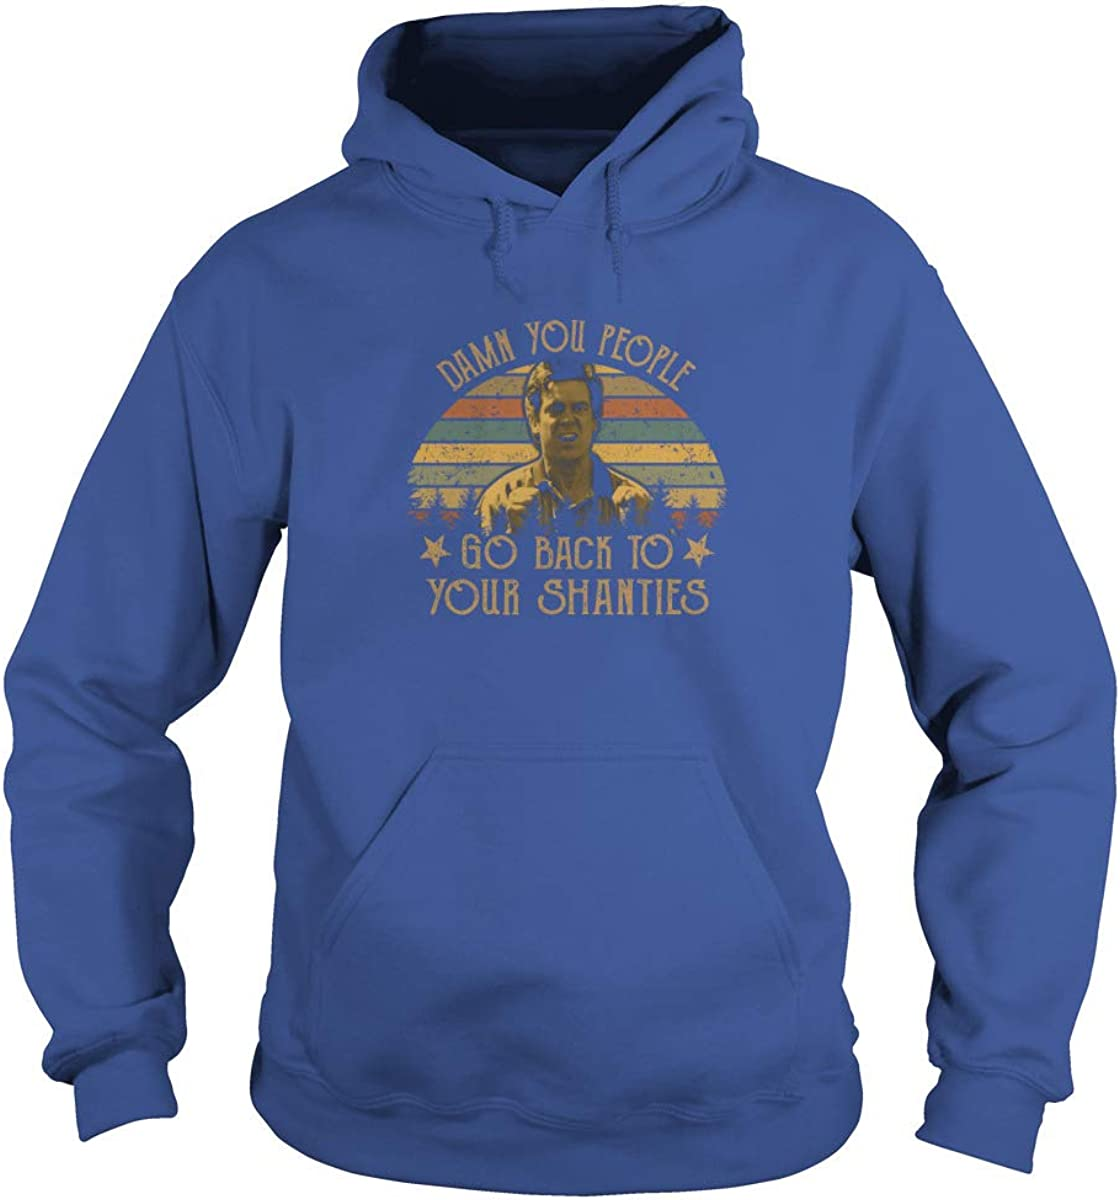 2XL, Royal Blue Unisex Damn You People Go Back to Your Shanties Vintage Adult Hooded Sweatshirt